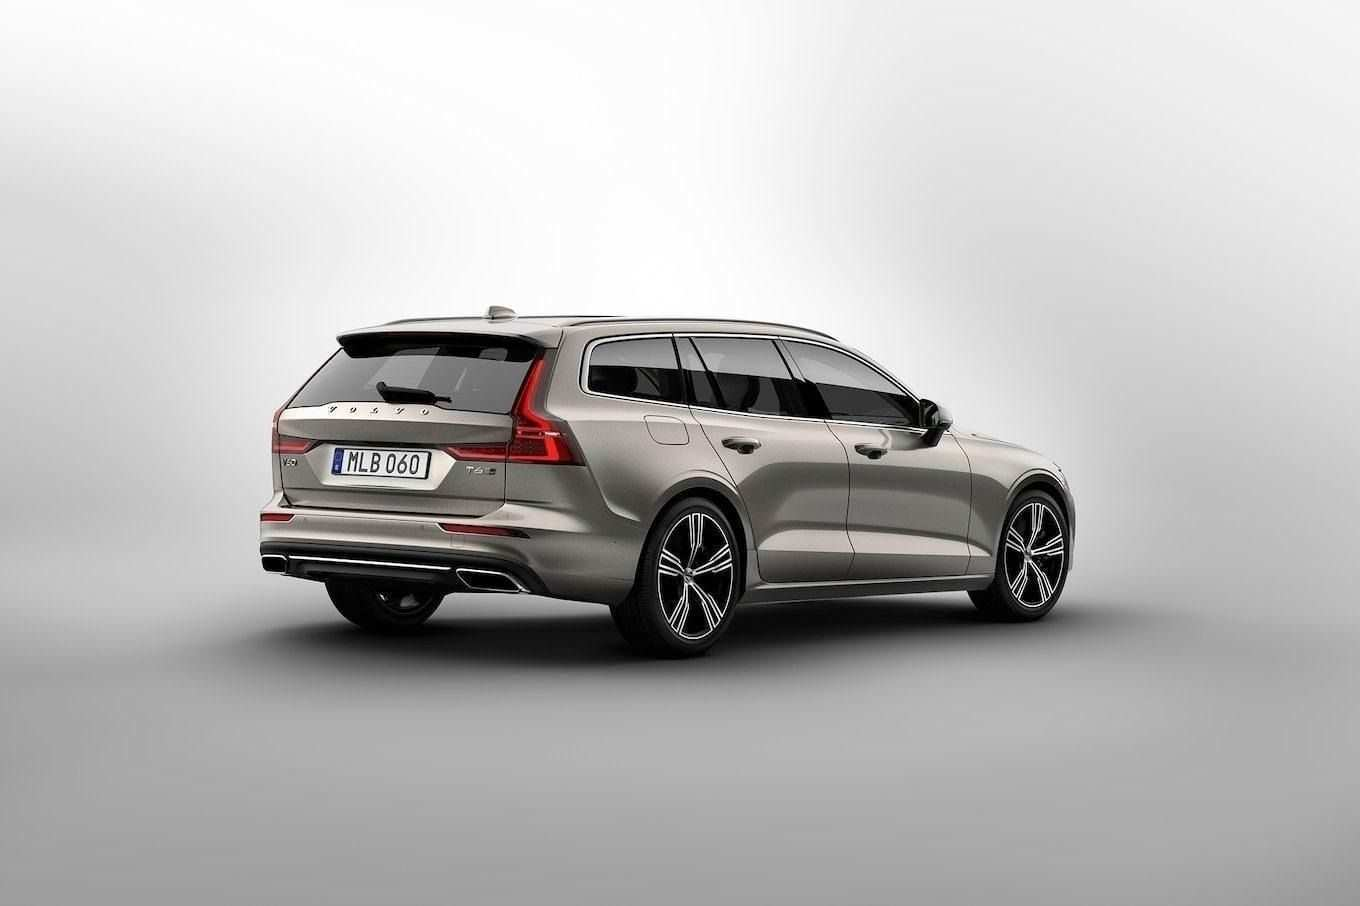 2019 Volvo Xc70 New Generation Wagon | Review Cars 2020